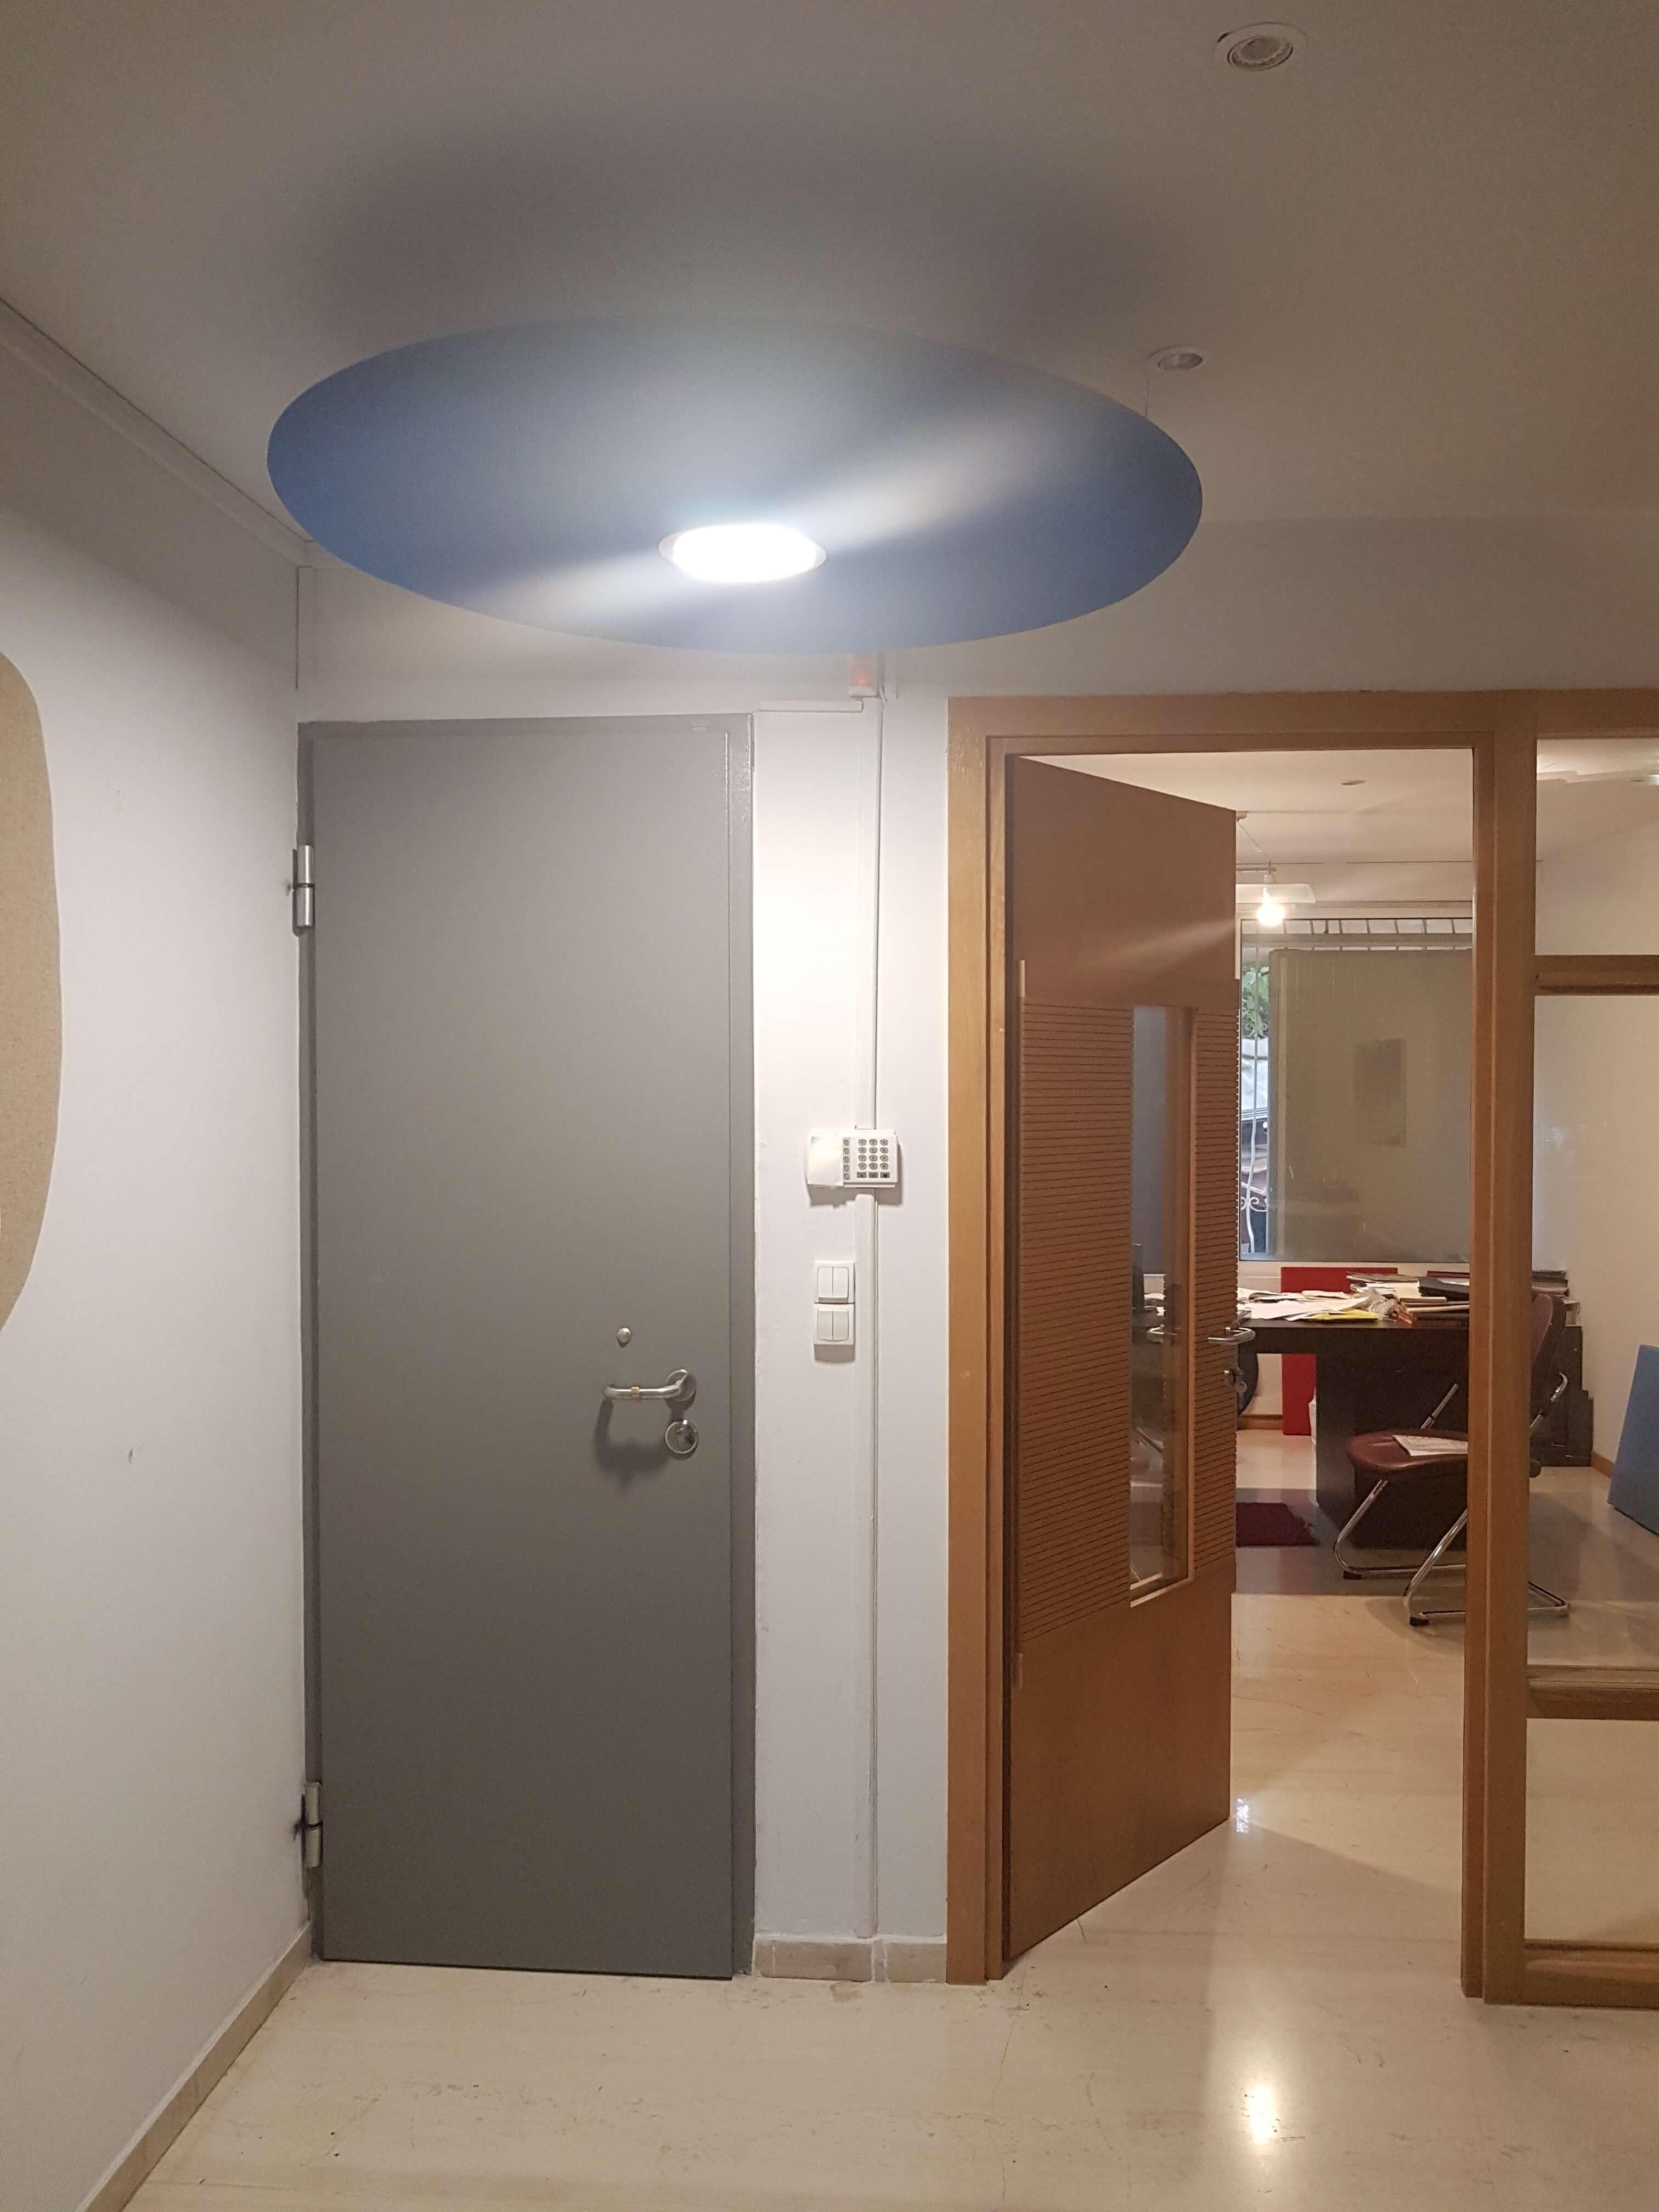 Round acoustic panel with in-built light